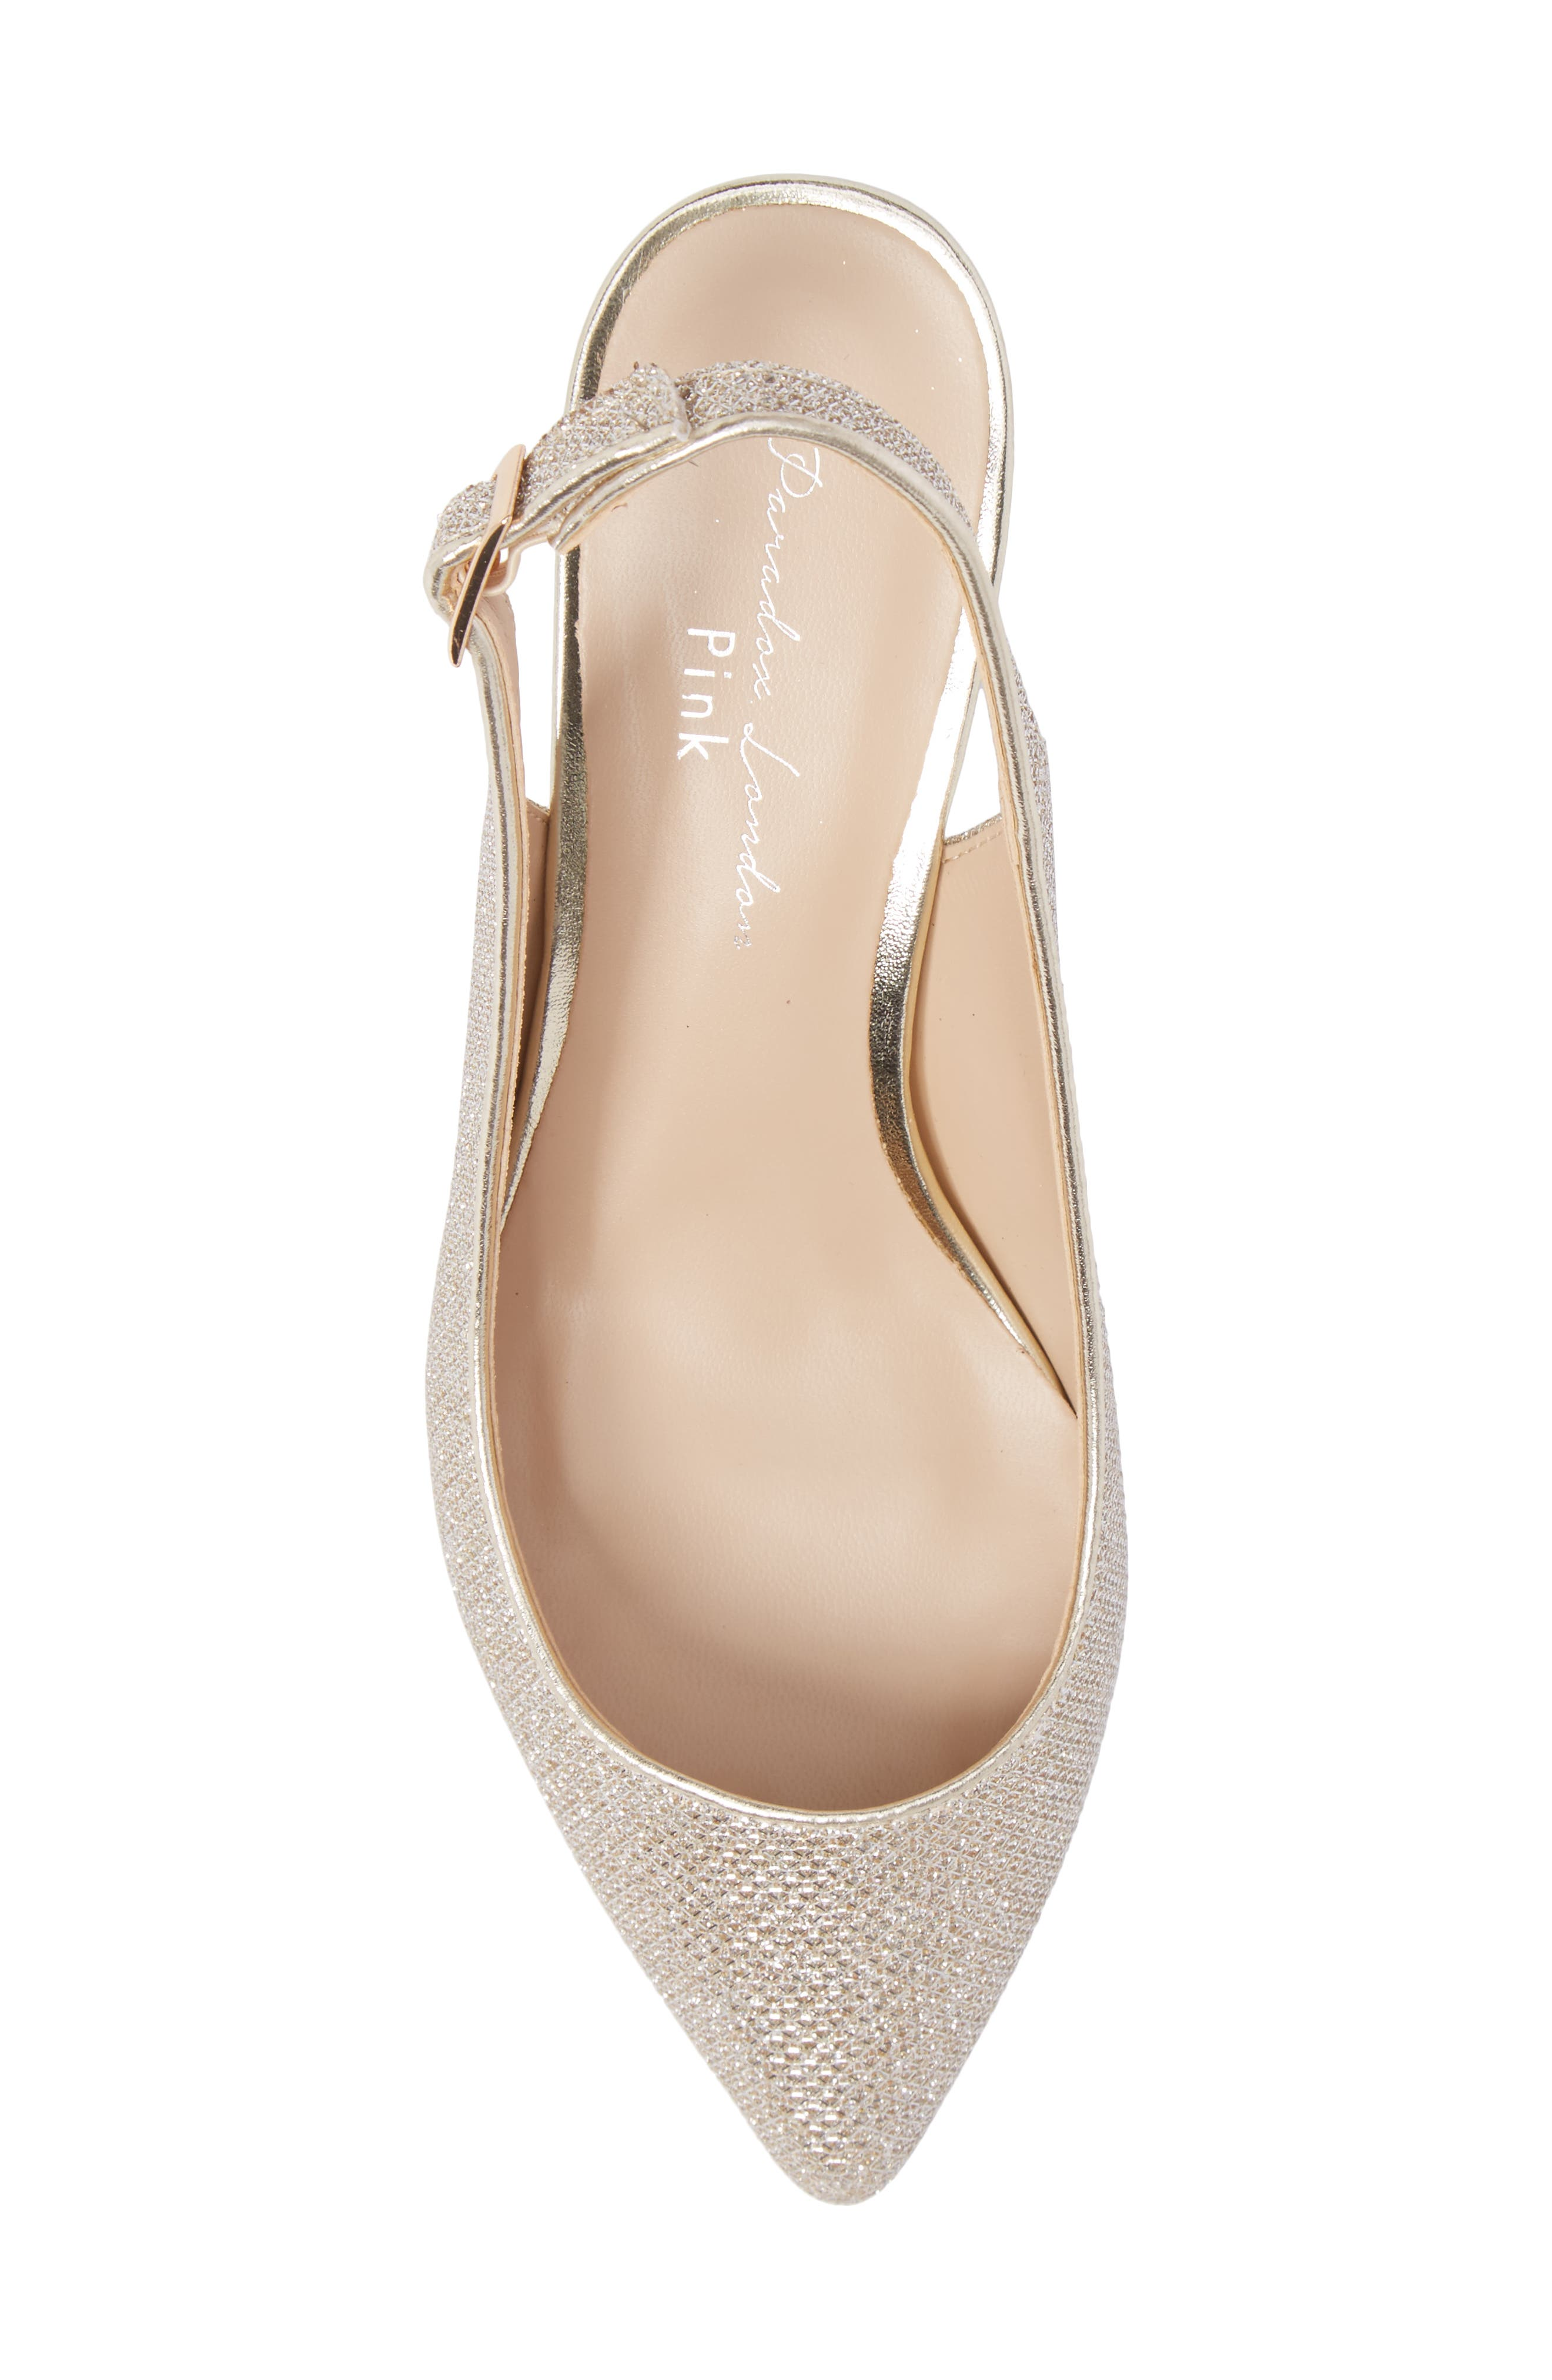 Aubree Slingback Pump,                             Alternate thumbnail 5, color,                             Champagne Glitter